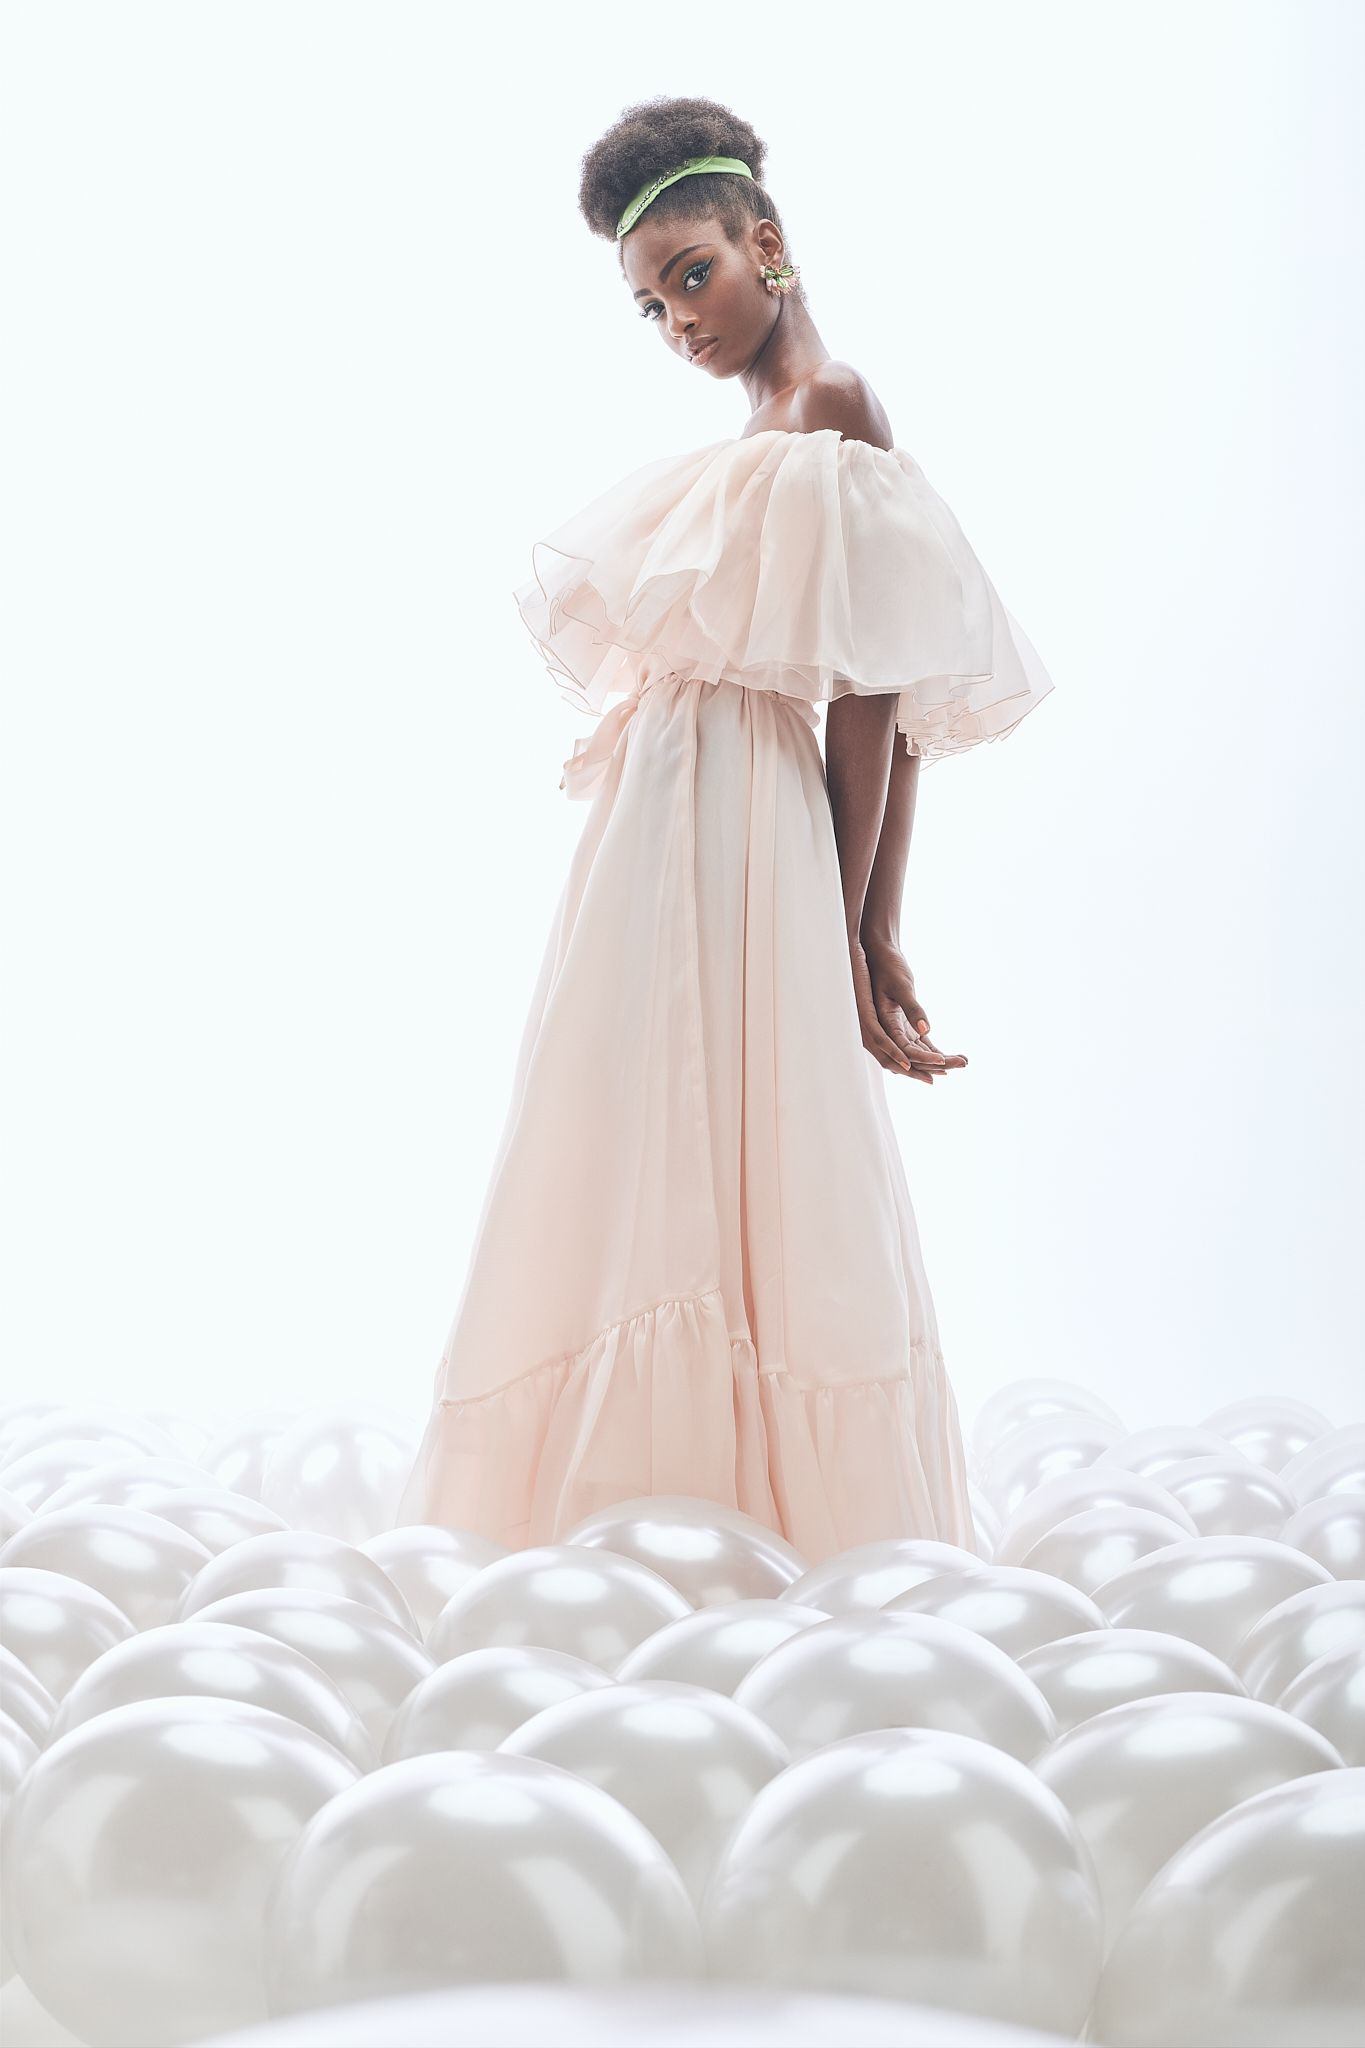 Editorial -Dreaming of couture-  Lucys Magazine  - Pic. 8